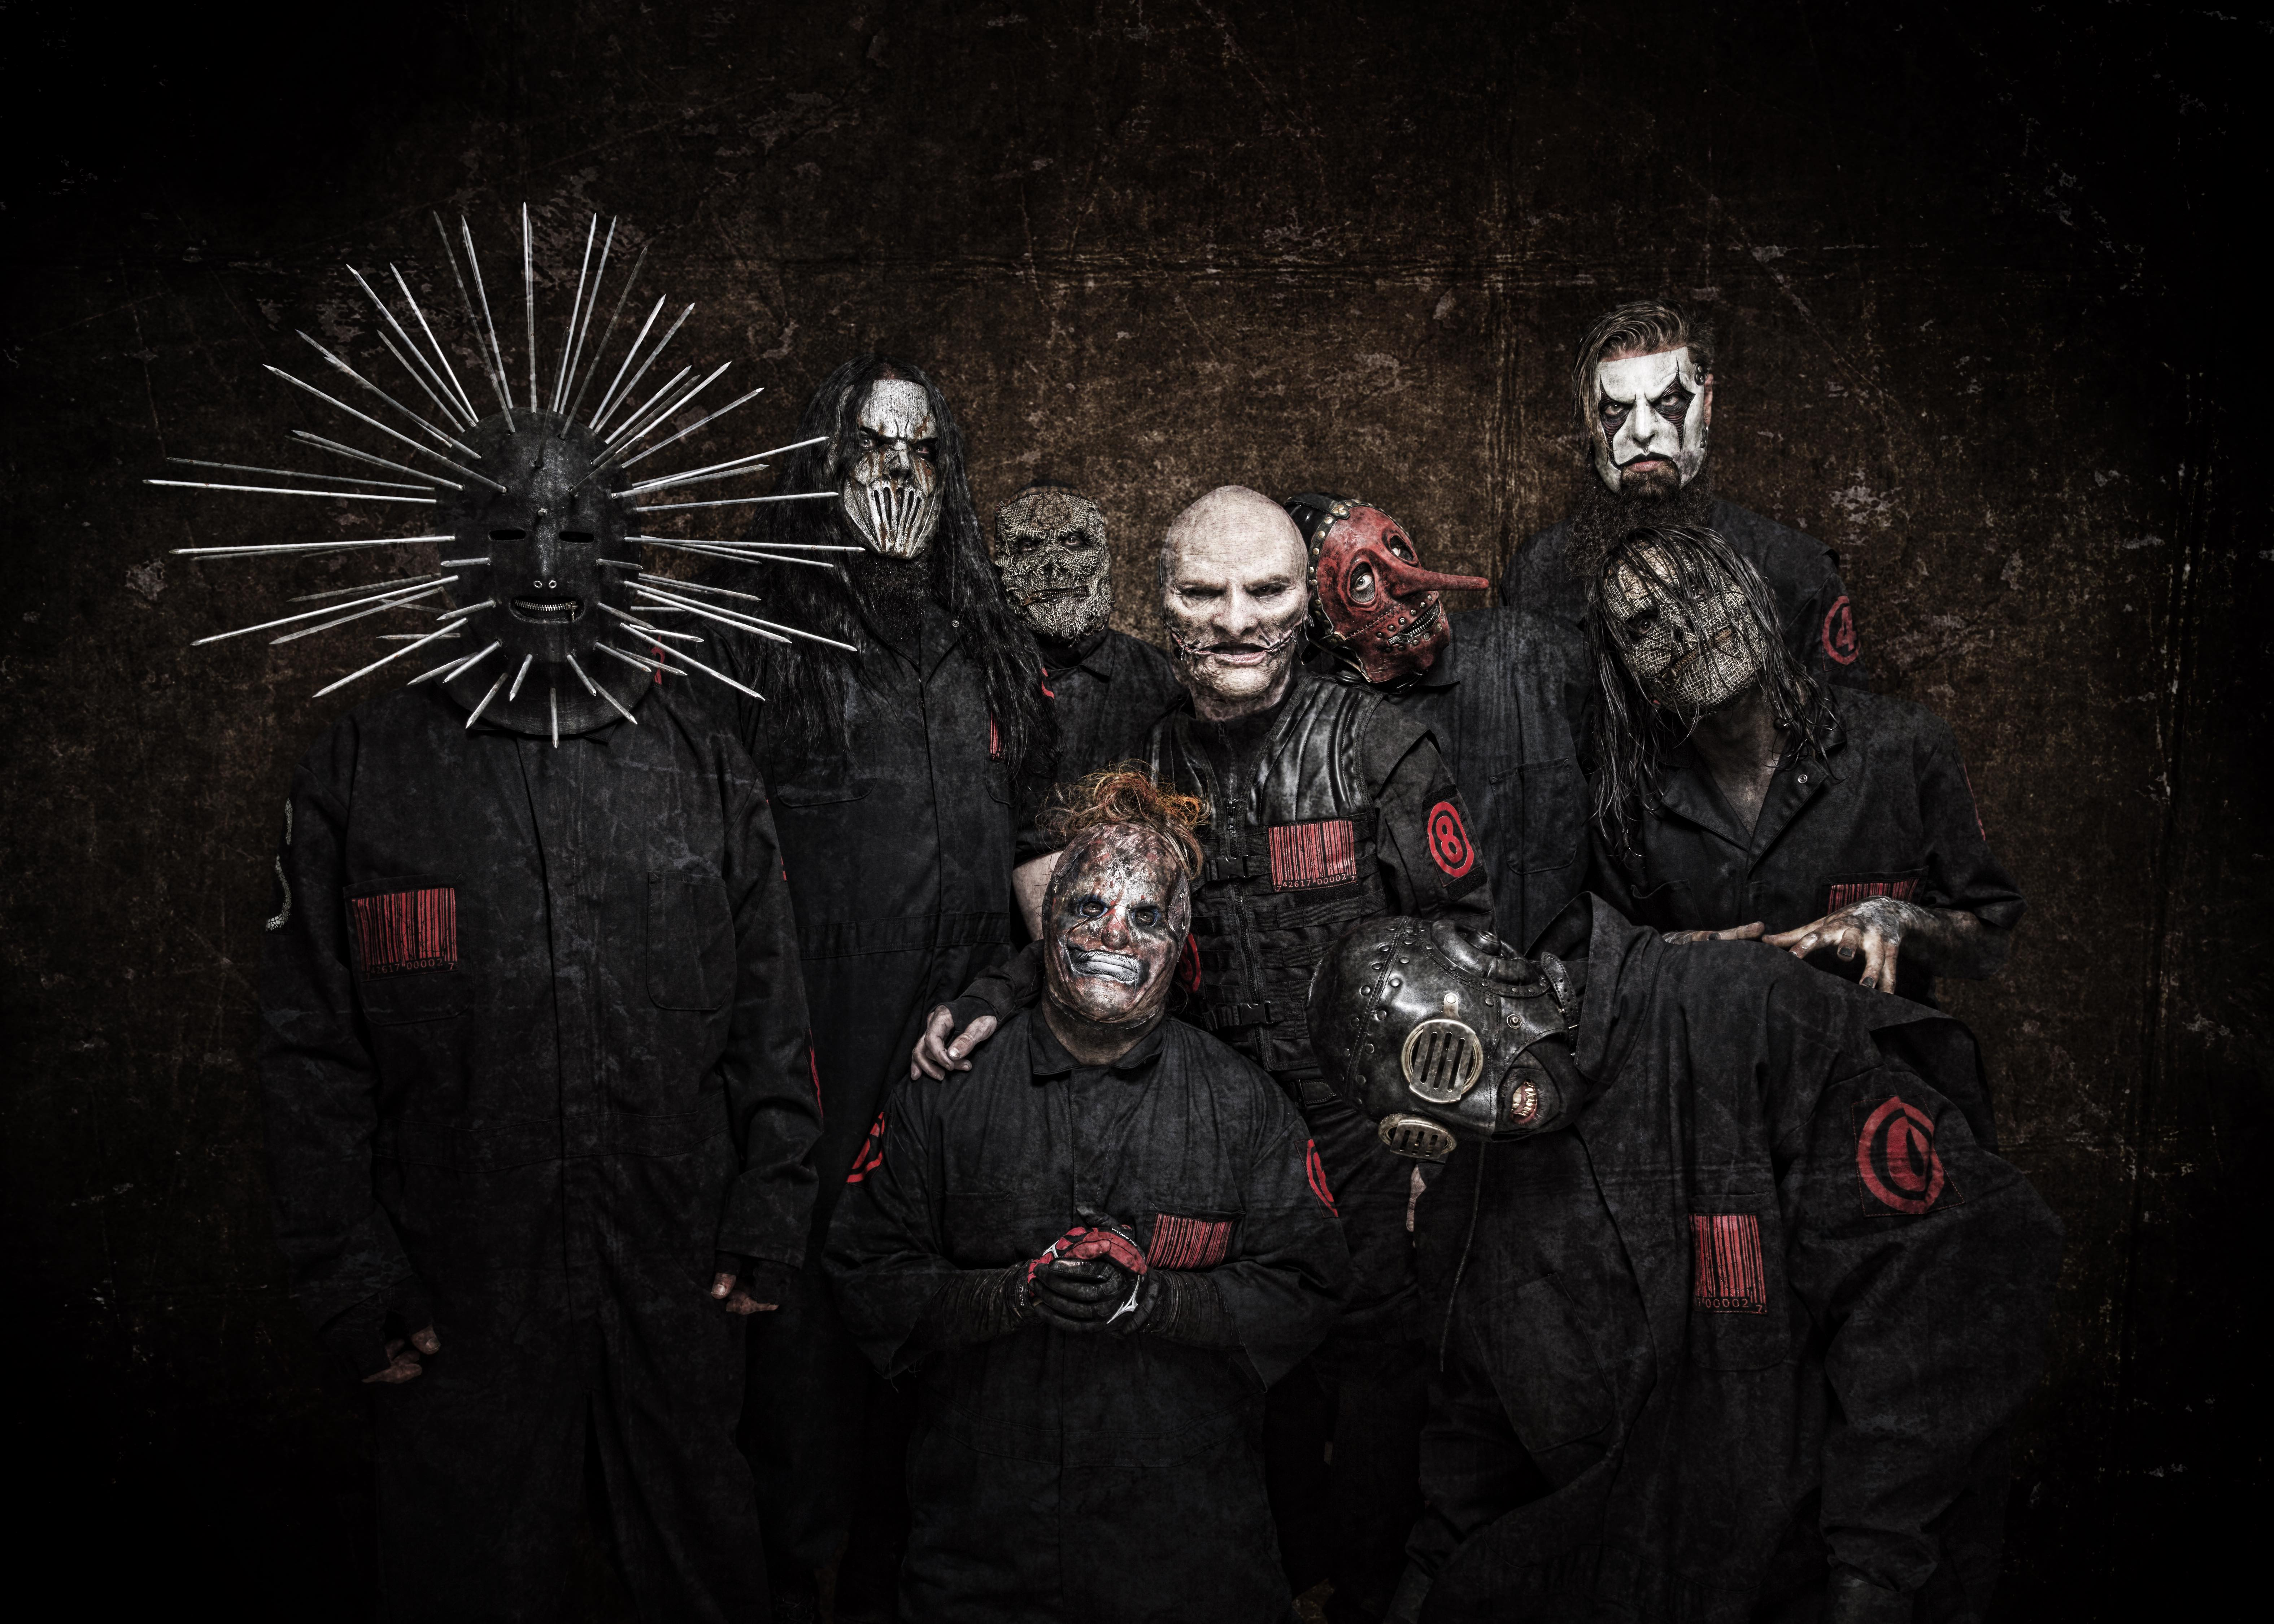 Copyright Slipknot 2018  Photocredits: Paul Harries